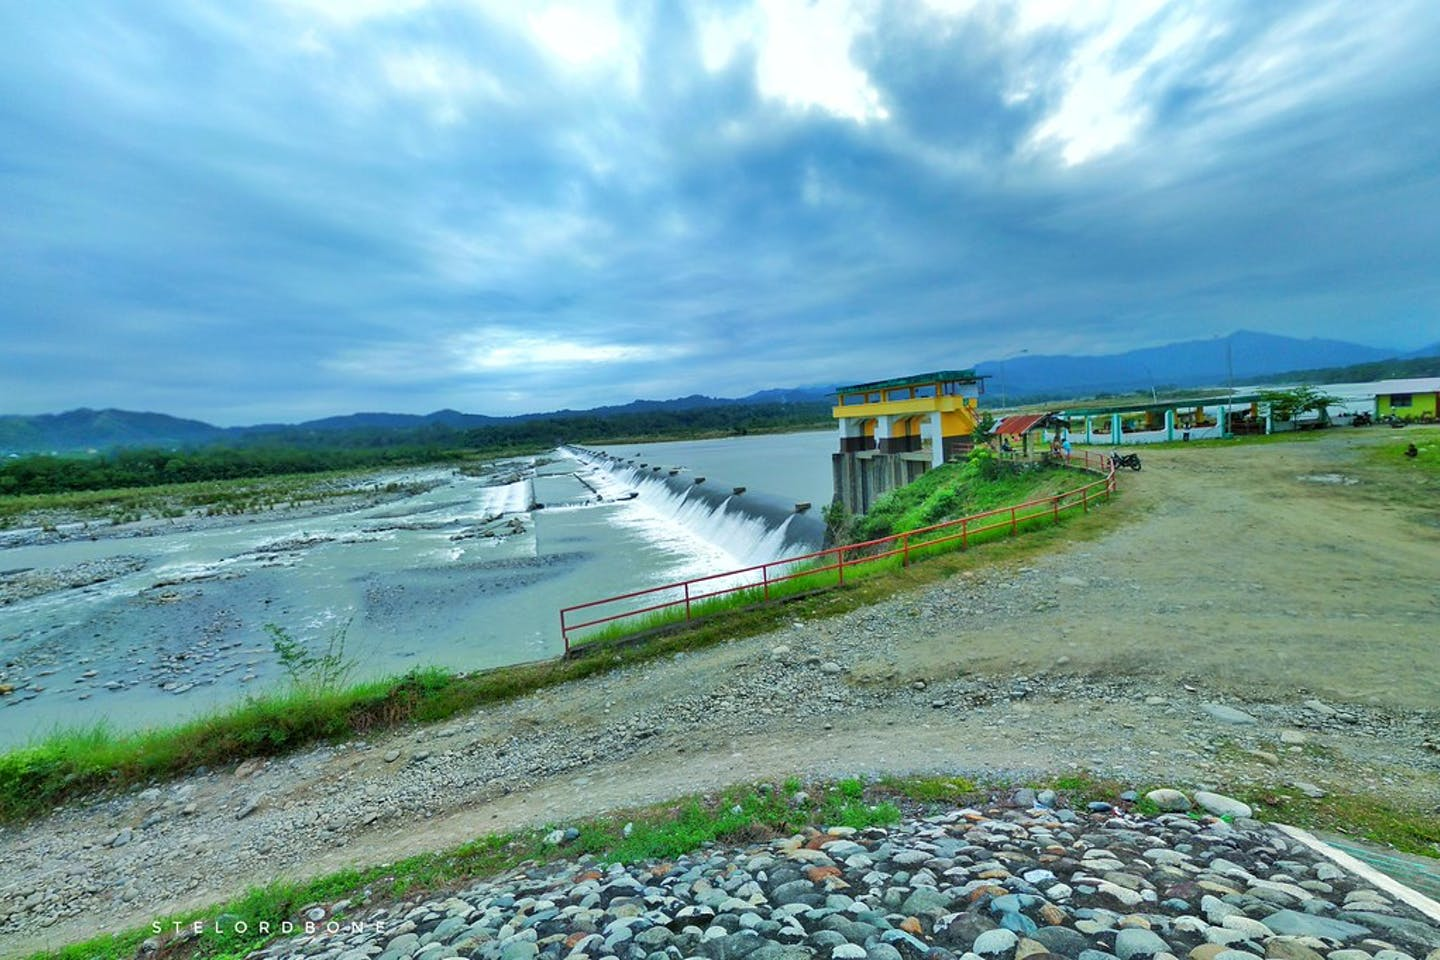 China-funded water project meets stiff opposition in the Philippines